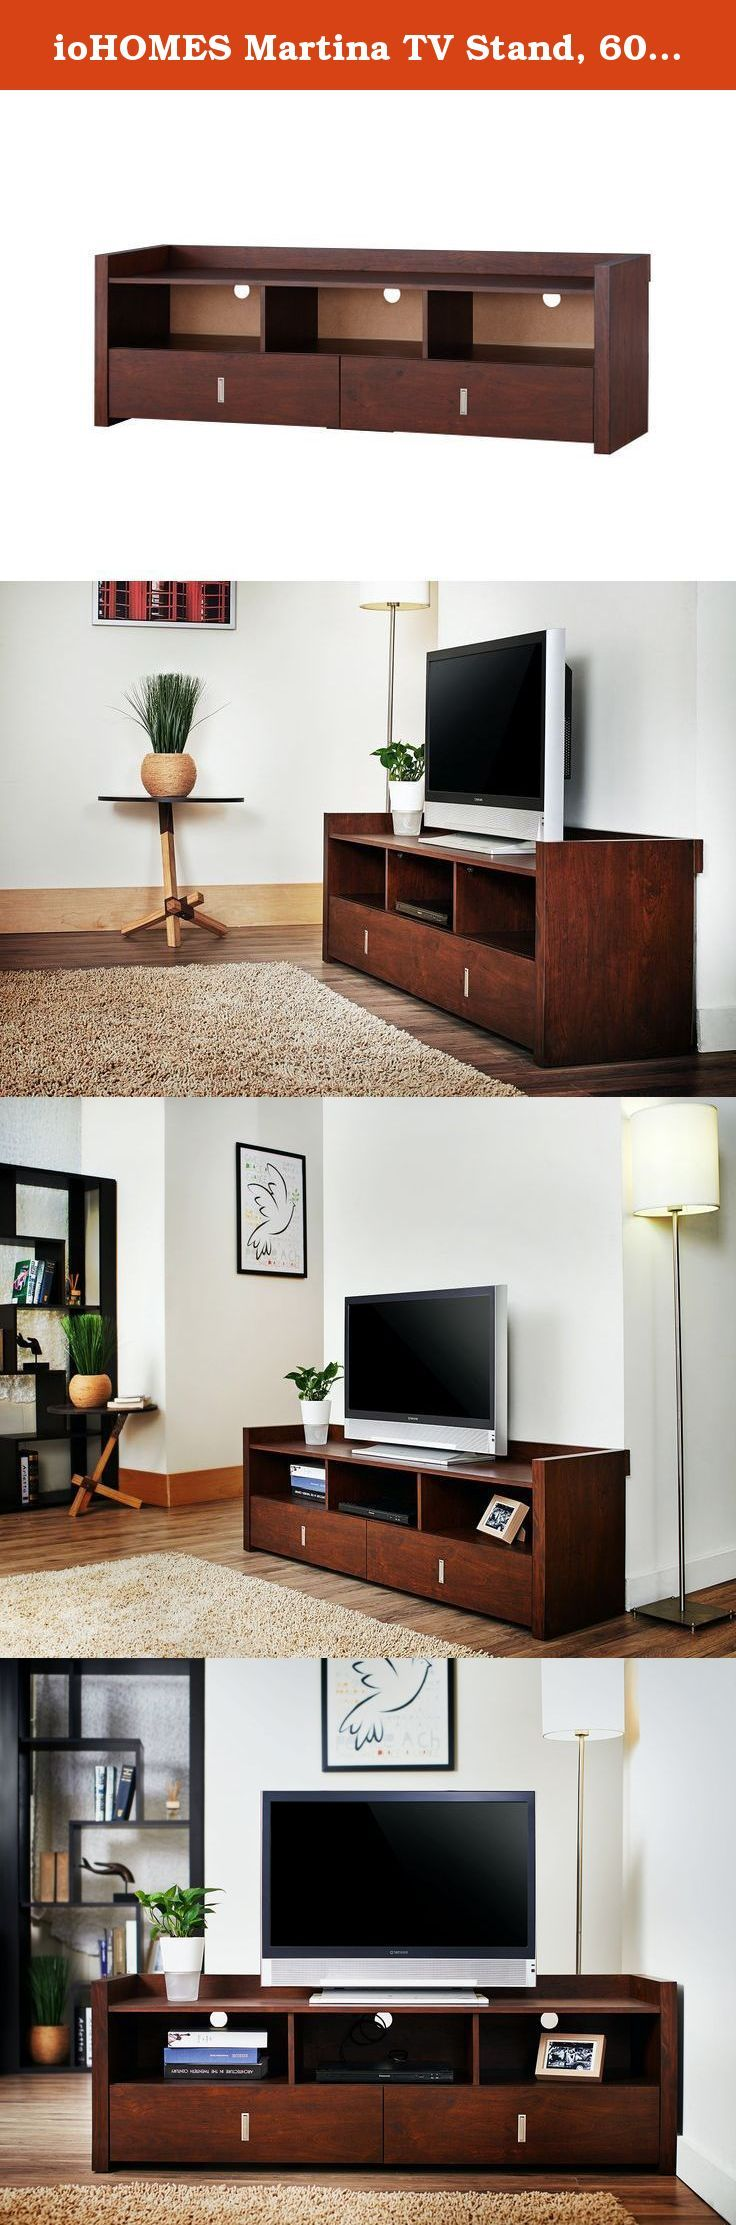 ioHOMES Martina TV Stand, 60-Inch, Vintage Walnut. The Martina 60 Inch TV Stand is a contemporary style media stand with plenty of useful features. With its sturdy wooden construction and spacious 60 inch tabletop, this stand can accommodate any large television set. Three compartments can hold your electronic devices and rear wiring access provides ease of use. Two roomy drawers provide ample space for storing DVDs, video games, remote control units and others. Manufactured in Taiwan....